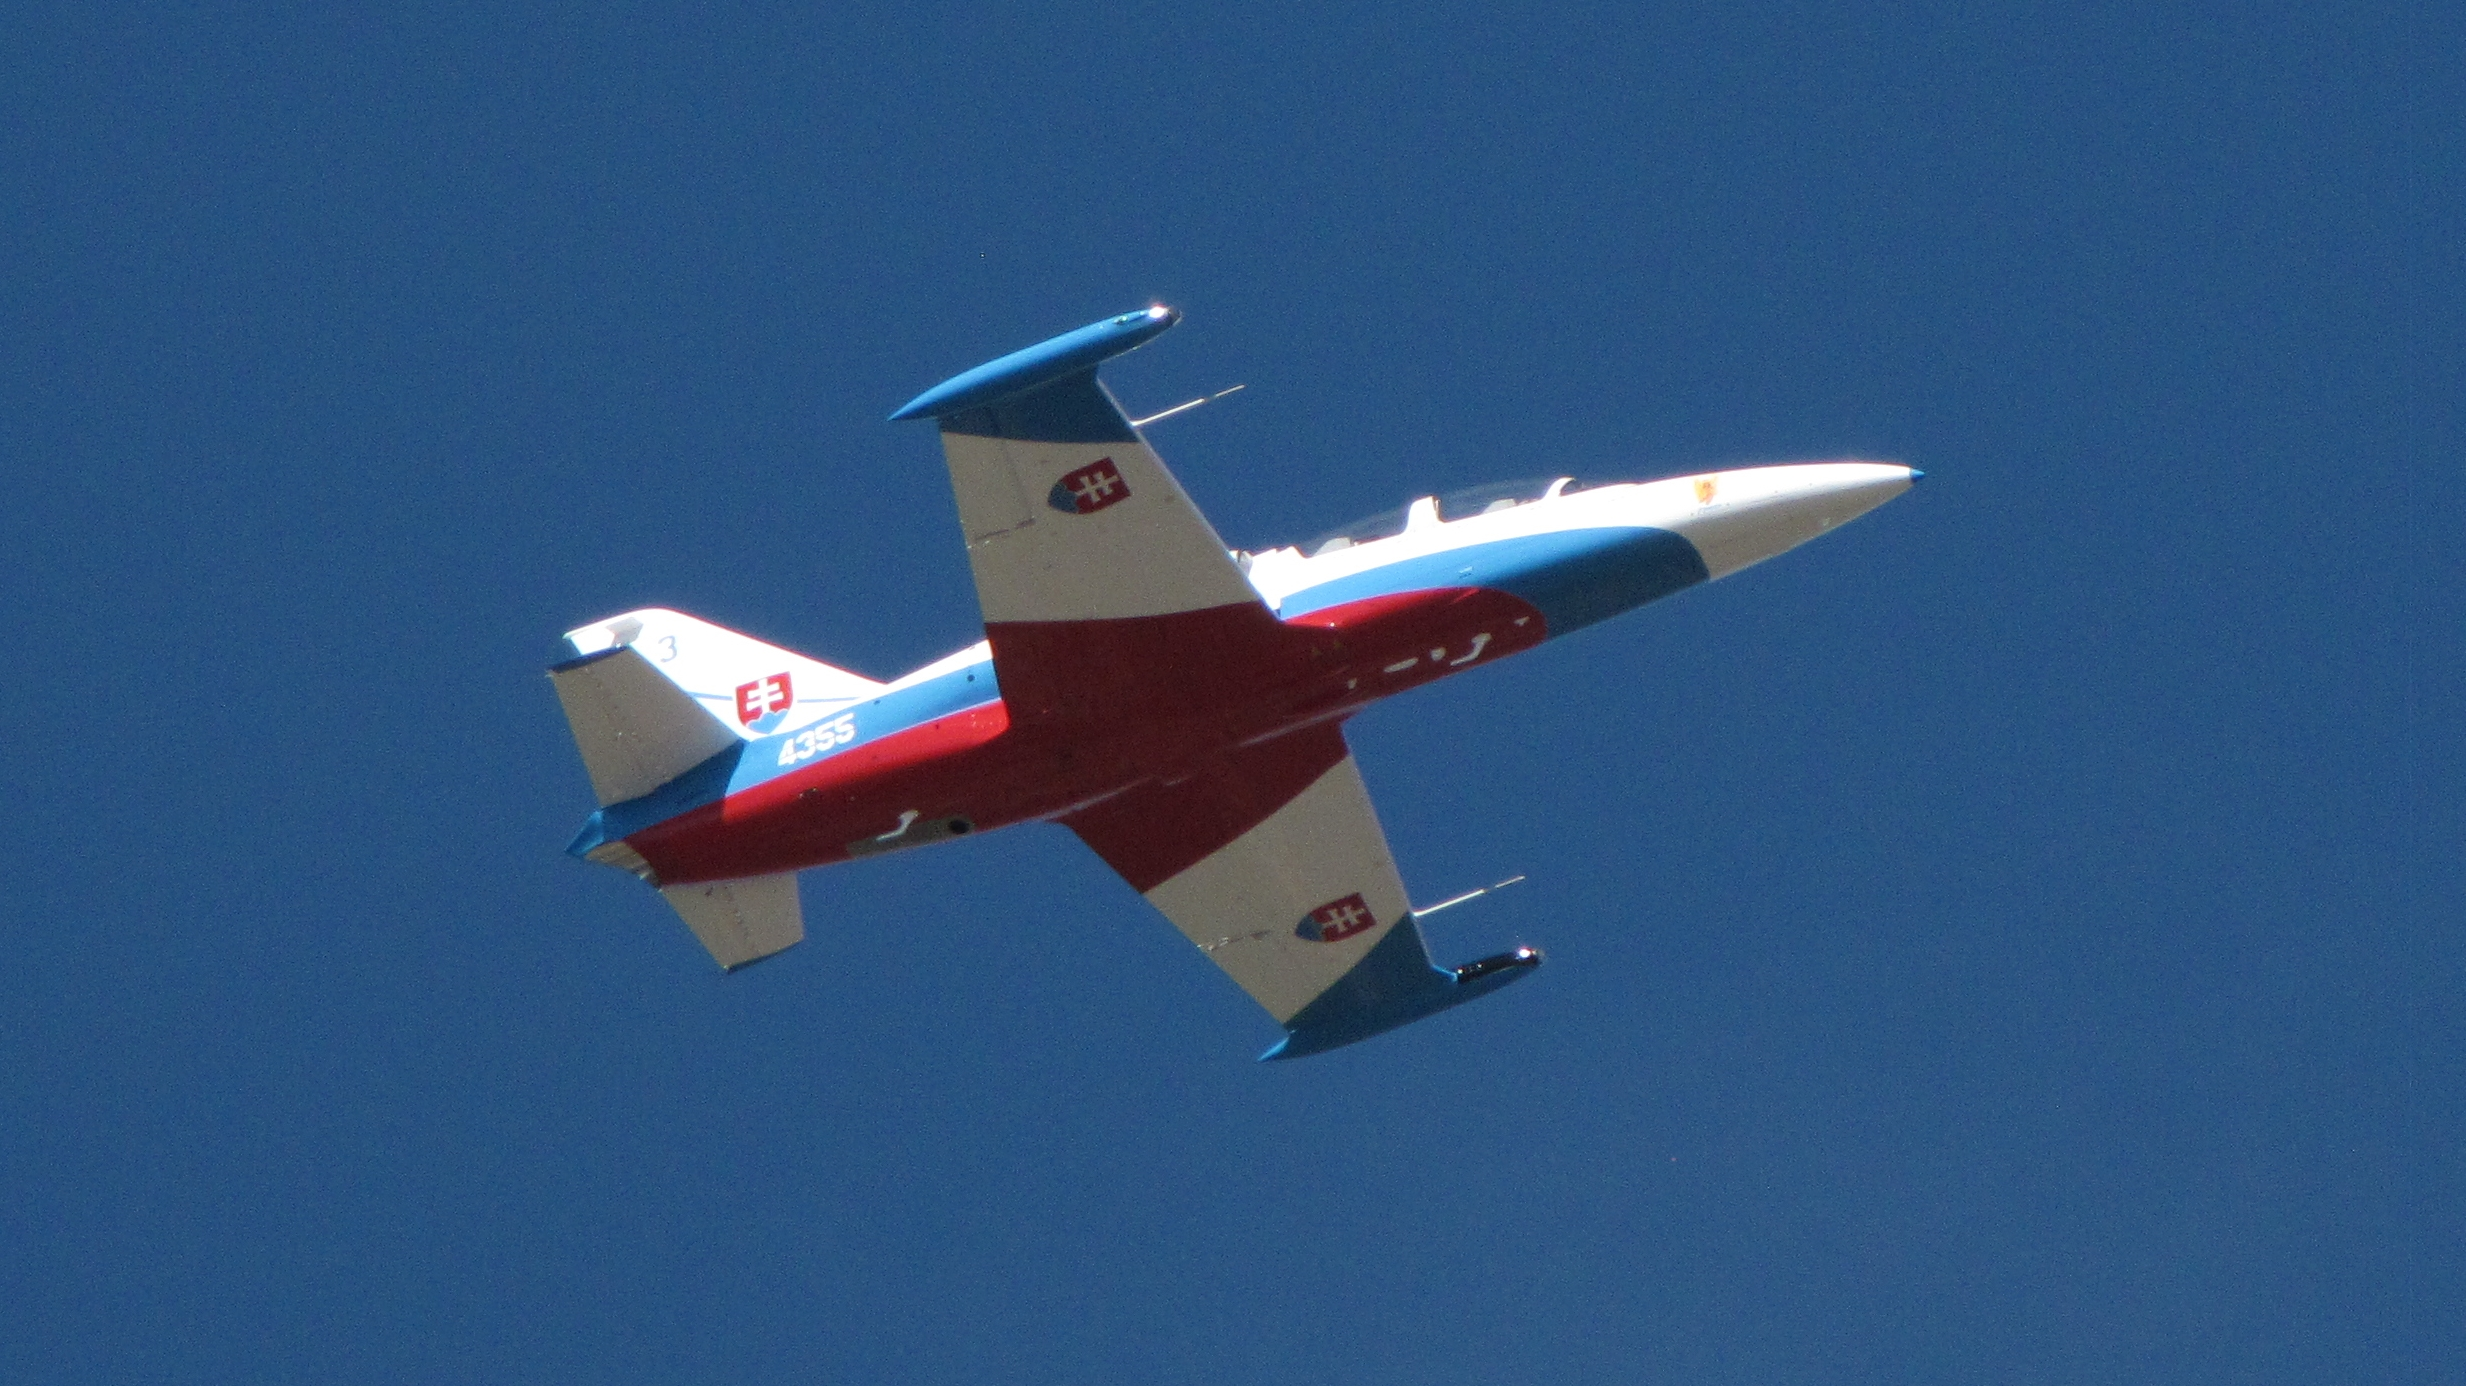 Above: Jet trainer from Slovakia seen from the Bay Area Park boardwalk over Armand Bayou in the area of Houston Texas USA. (Click to zoom.) Image credit: Douglas Yazell.